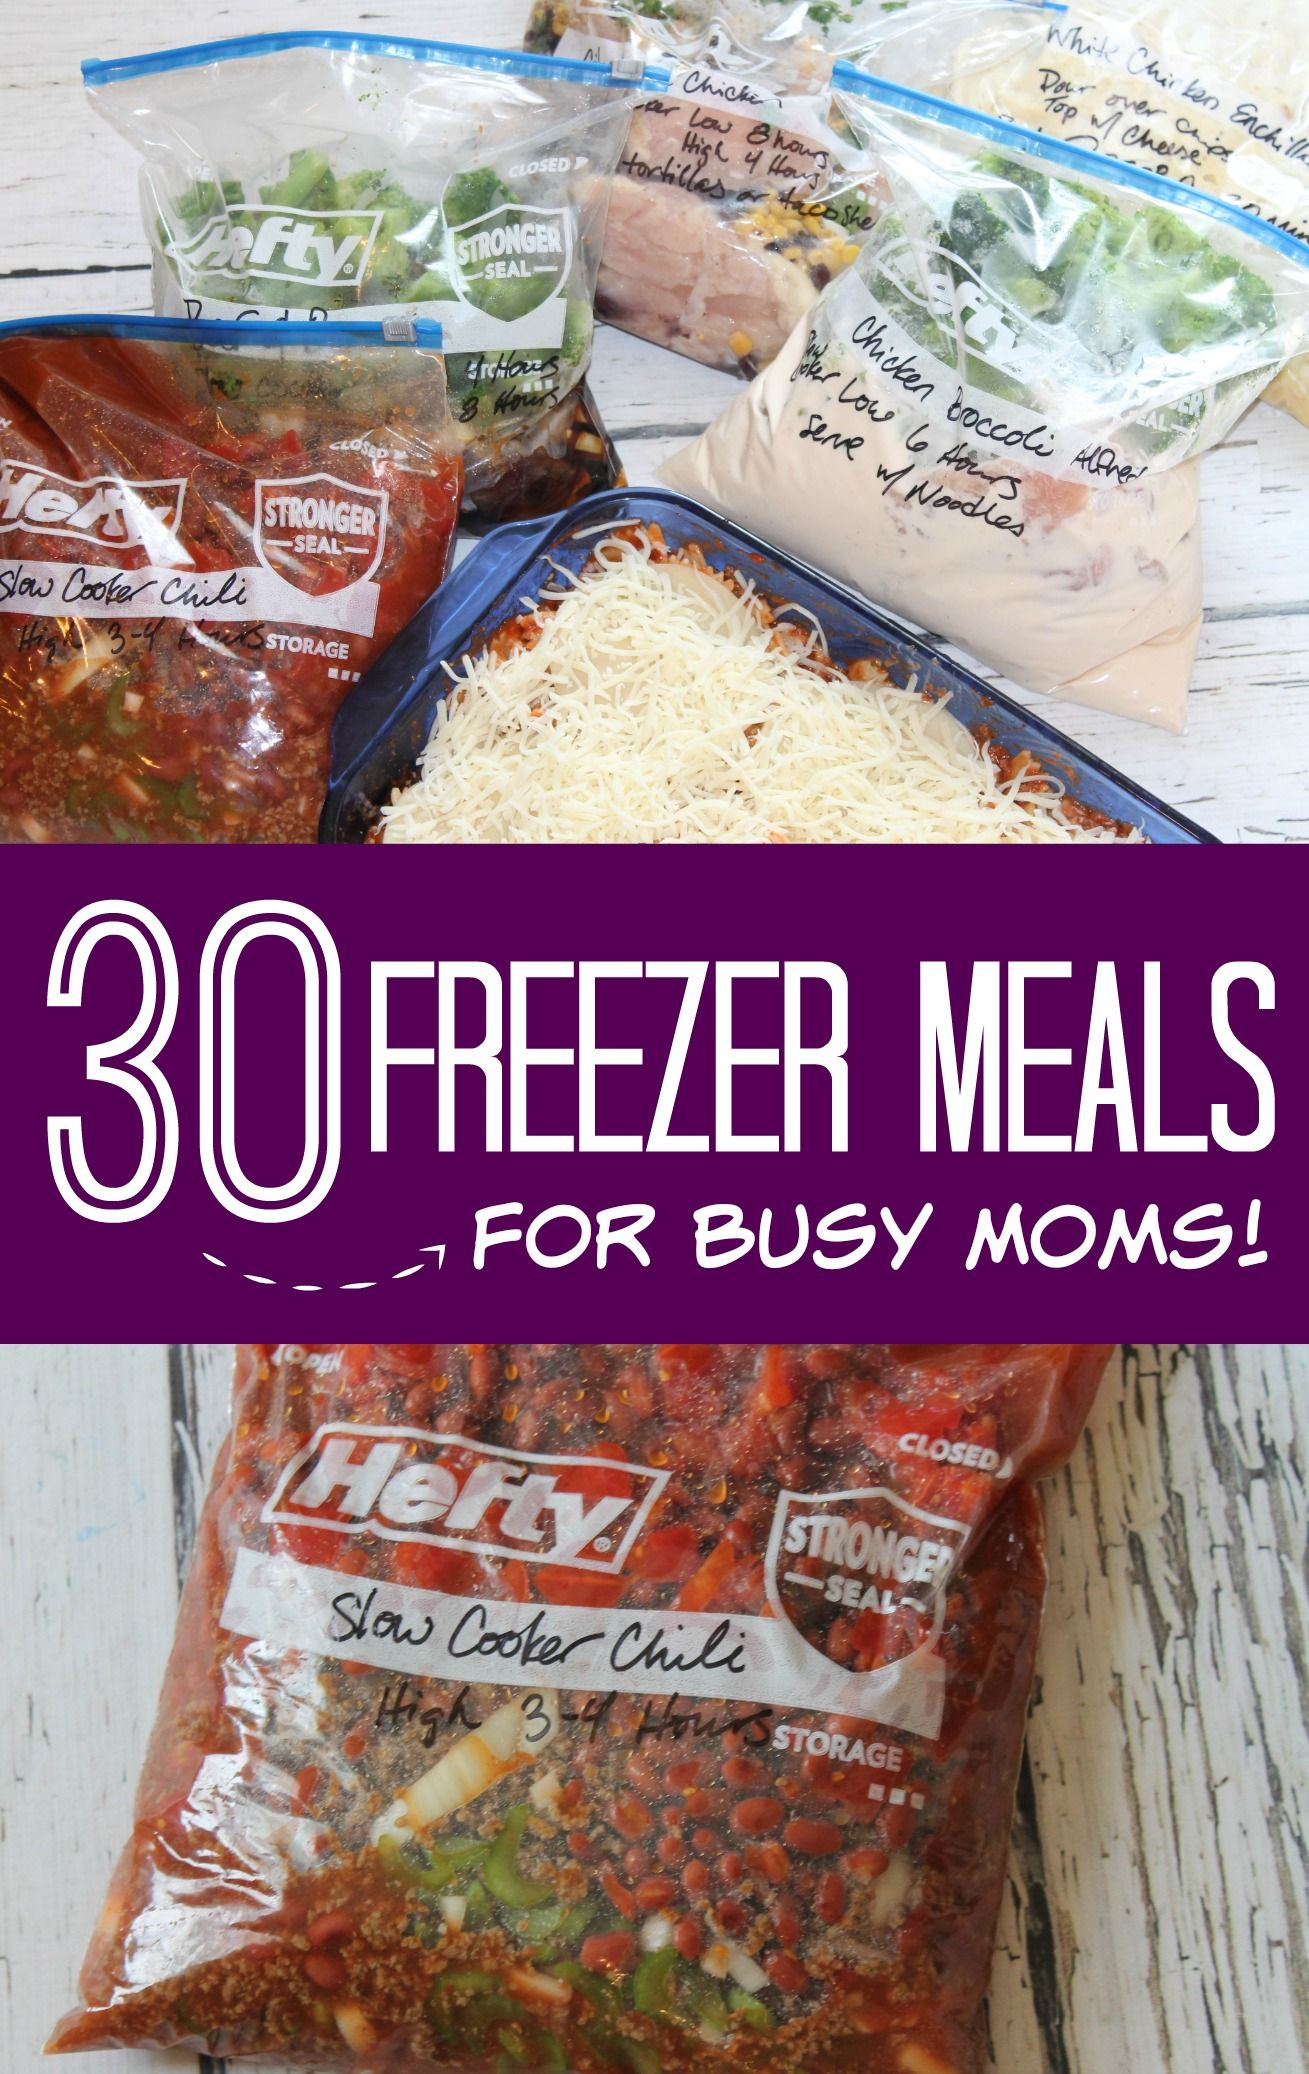 freezer meals for busy moms easy meal ideas and recipes for on the